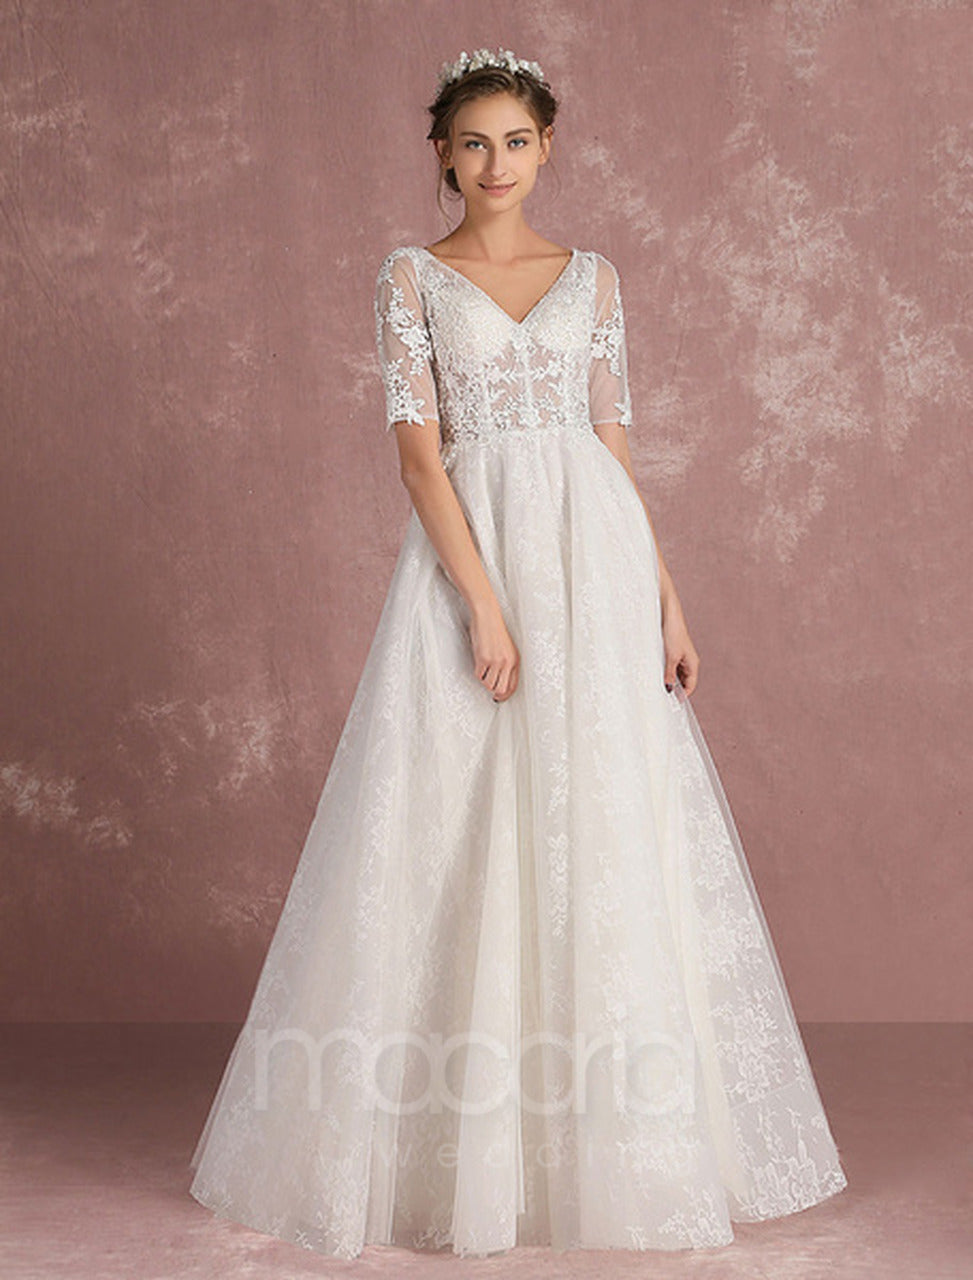 Wedding Dresses - V-Neck Lace Applique Illusion | Macaria Wedding